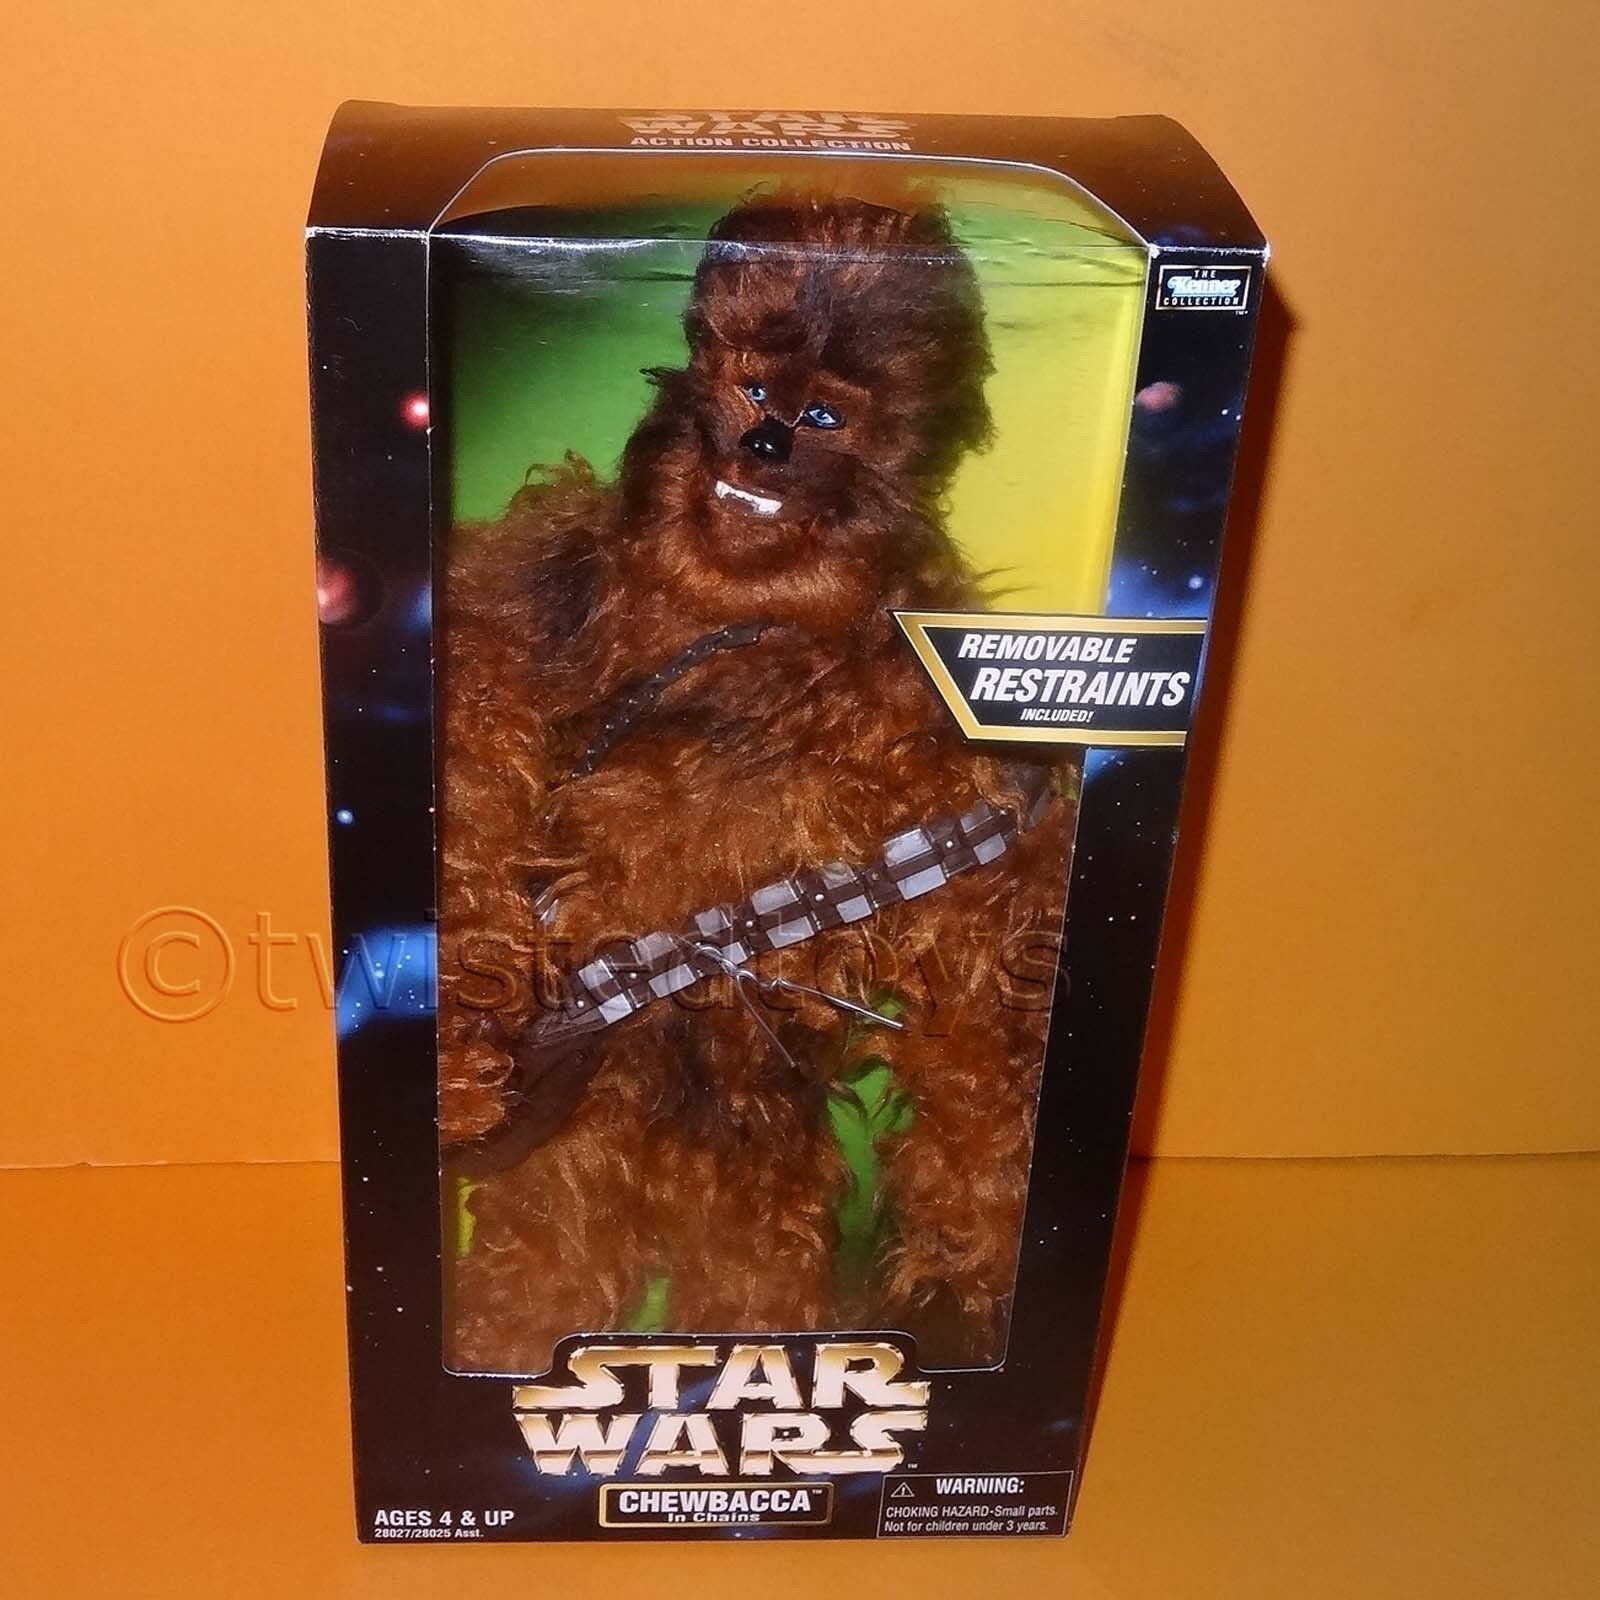 1998 HASBRO STAR WARS THE KENNER COLLECTION CHEWBACCA IN CHAINS 12  FIGURE BOXED